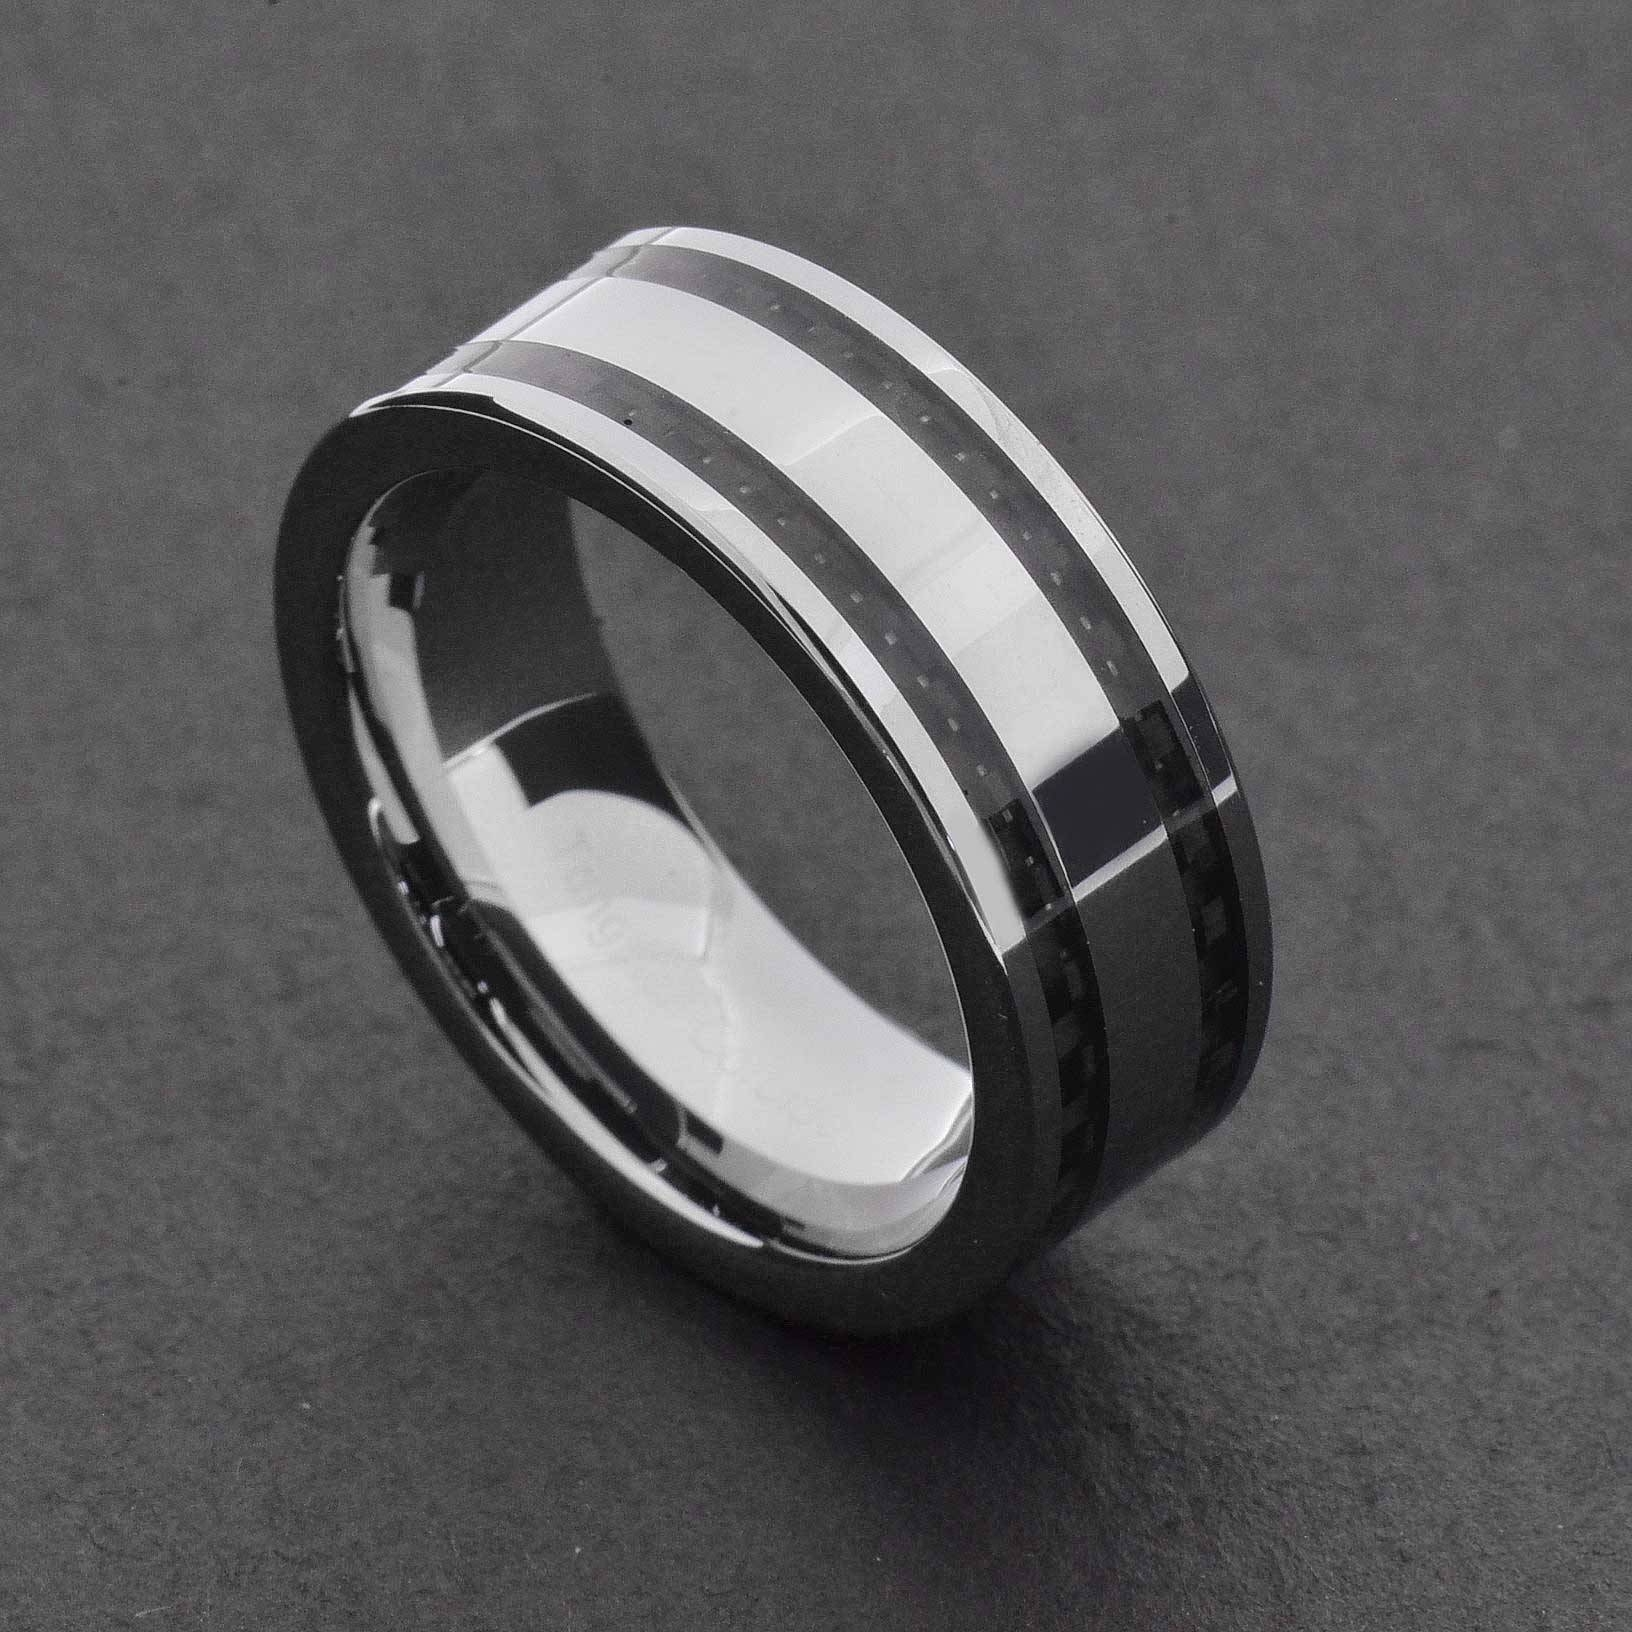 Tungsten Carbide Ring Comfort Fit Wedding Band Men Silver Blue With Regard To Men's Black And Blue Wedding Bands (View 6 of 15)